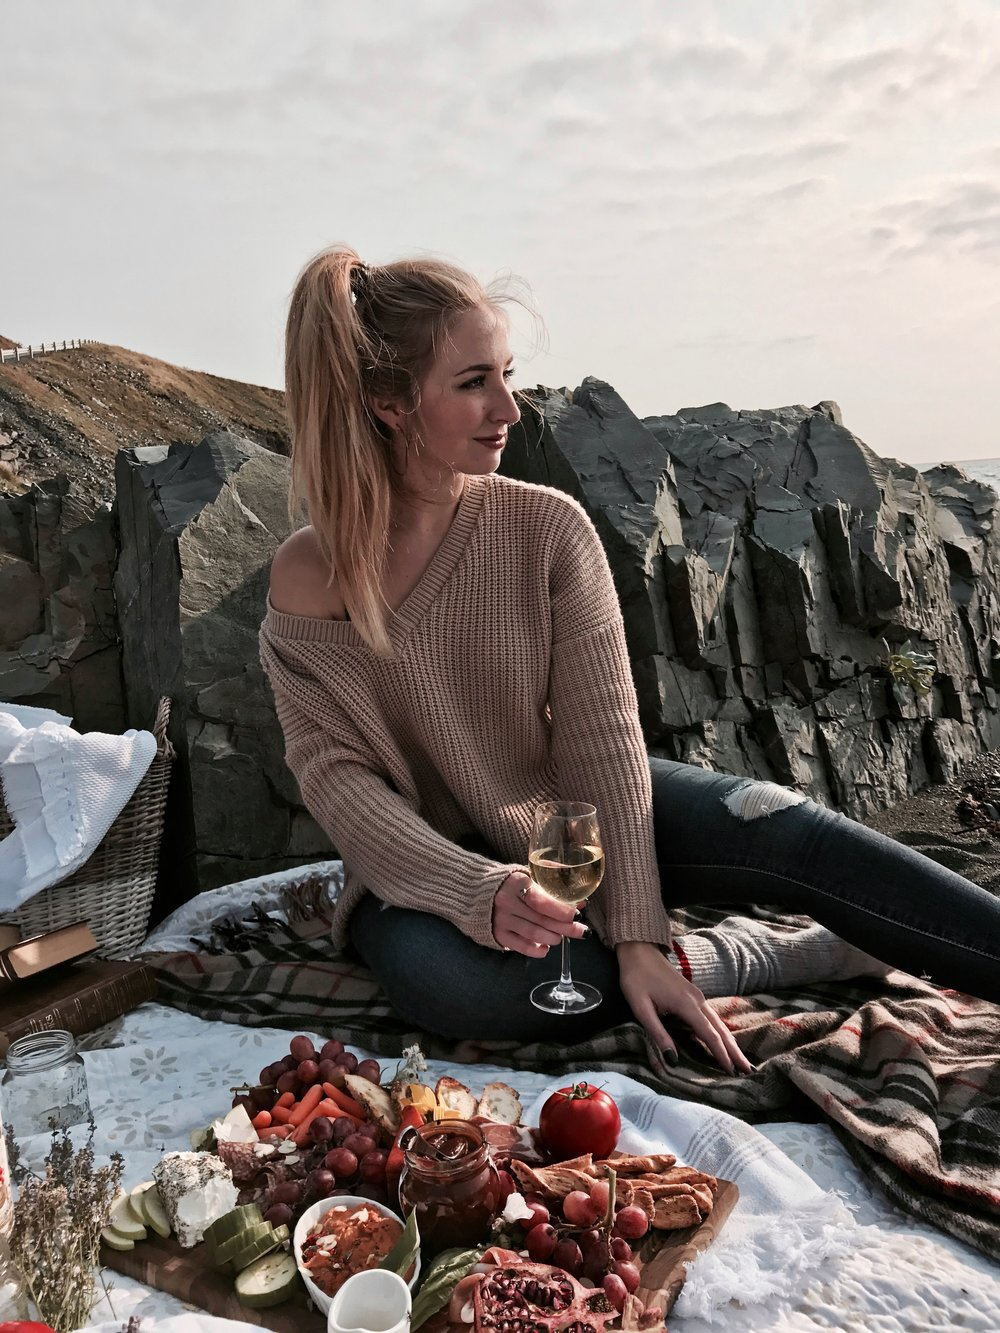 jessica kilfoy fashion food blog fall autumn charcuterie picnic goals inspiration newfoundland